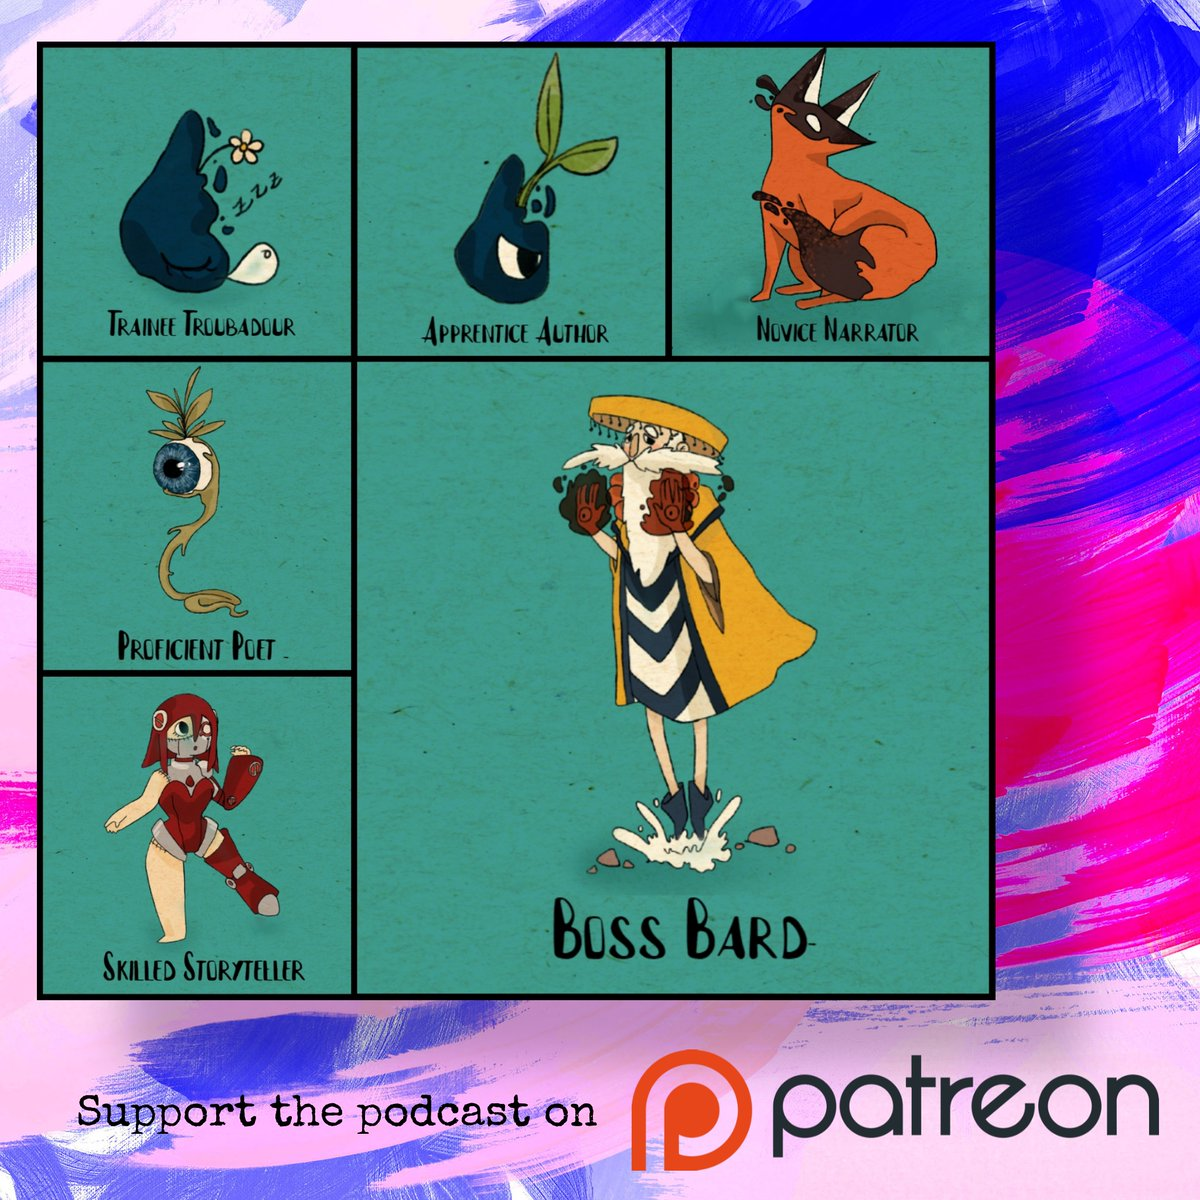 📢 With six distinct tiers bagging you #exclusive #perks, such as #behindthescenes content, #earlyaccess, and even unique #shortstory #commissions, please consider #supporting the podcast by joining us on #Patreon. Every contribution helps! ❤️ #linkinbio